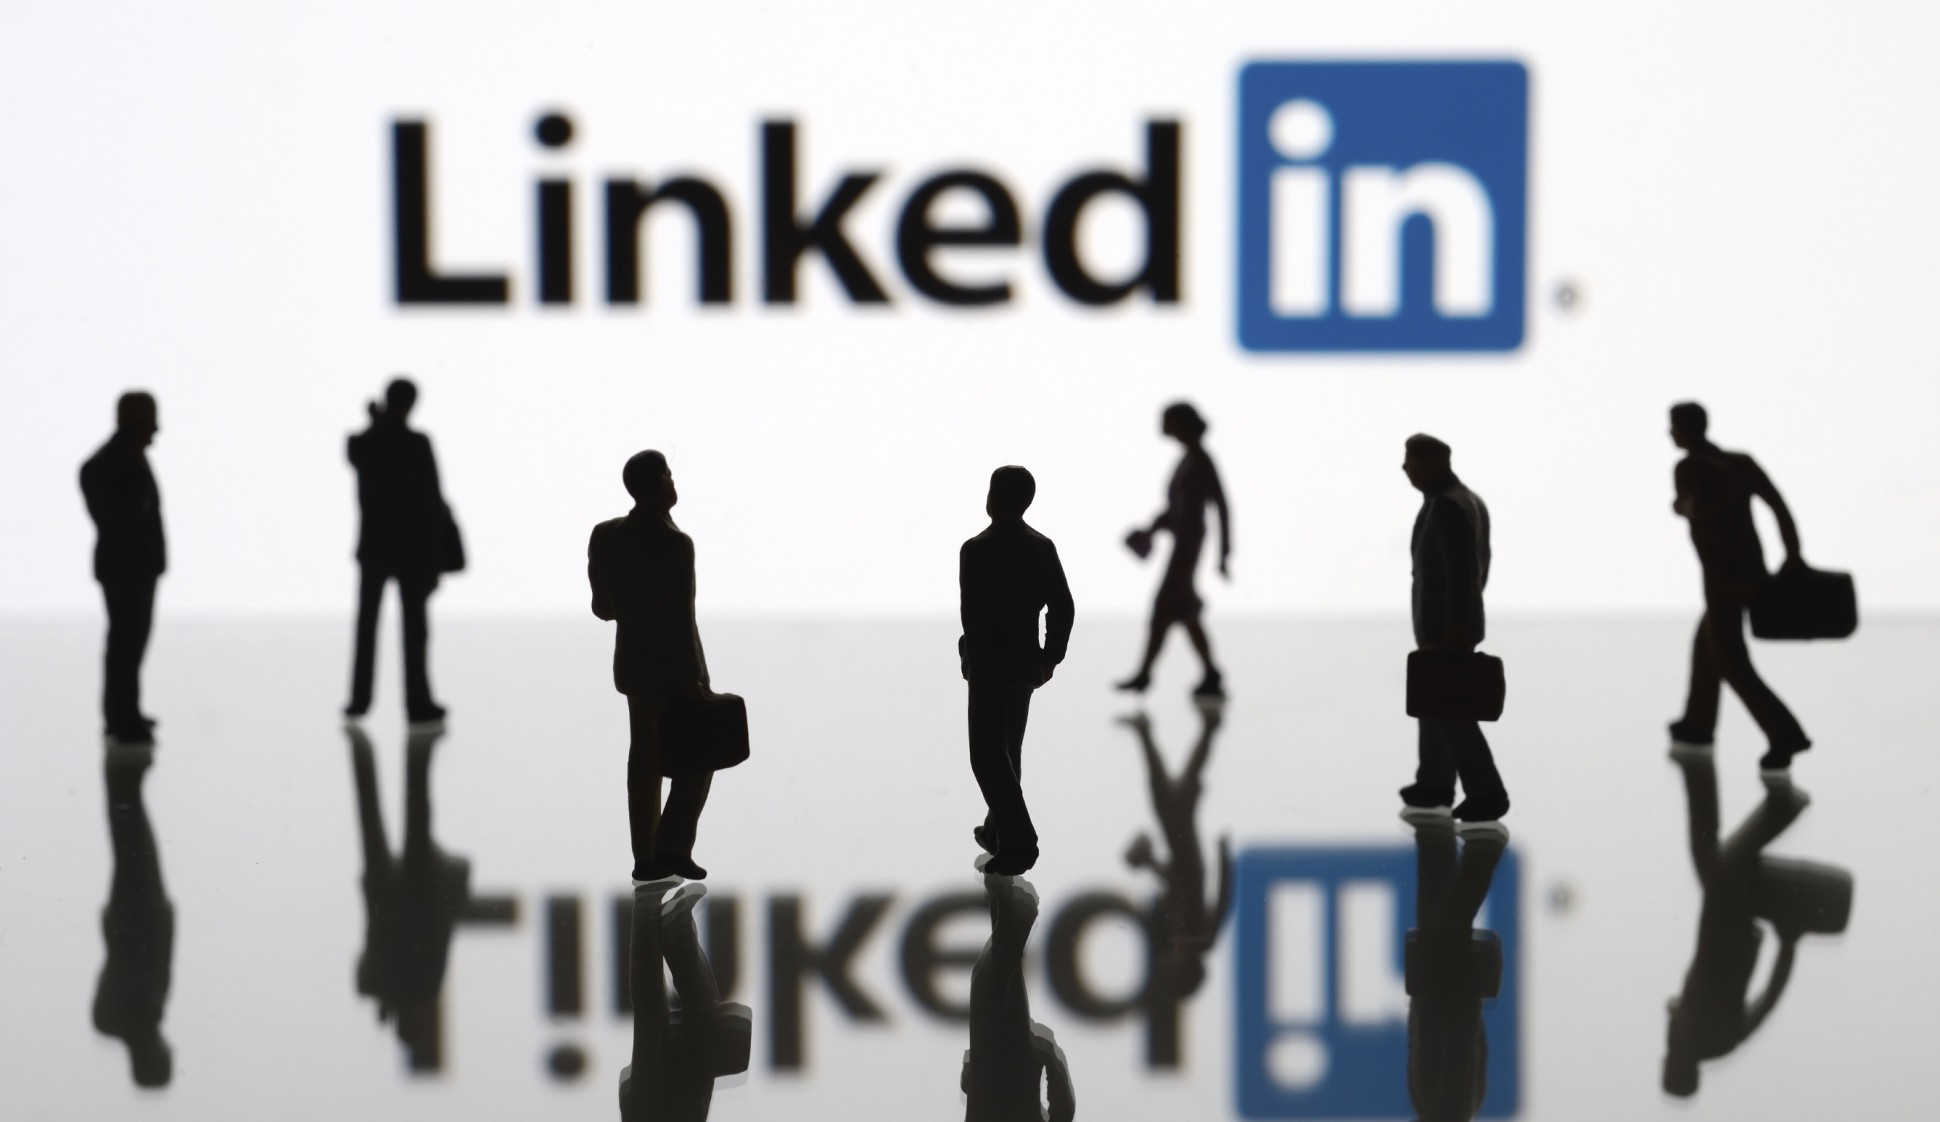 Promote  Your Business Website Or Product To My 4,662 Linkedin connections